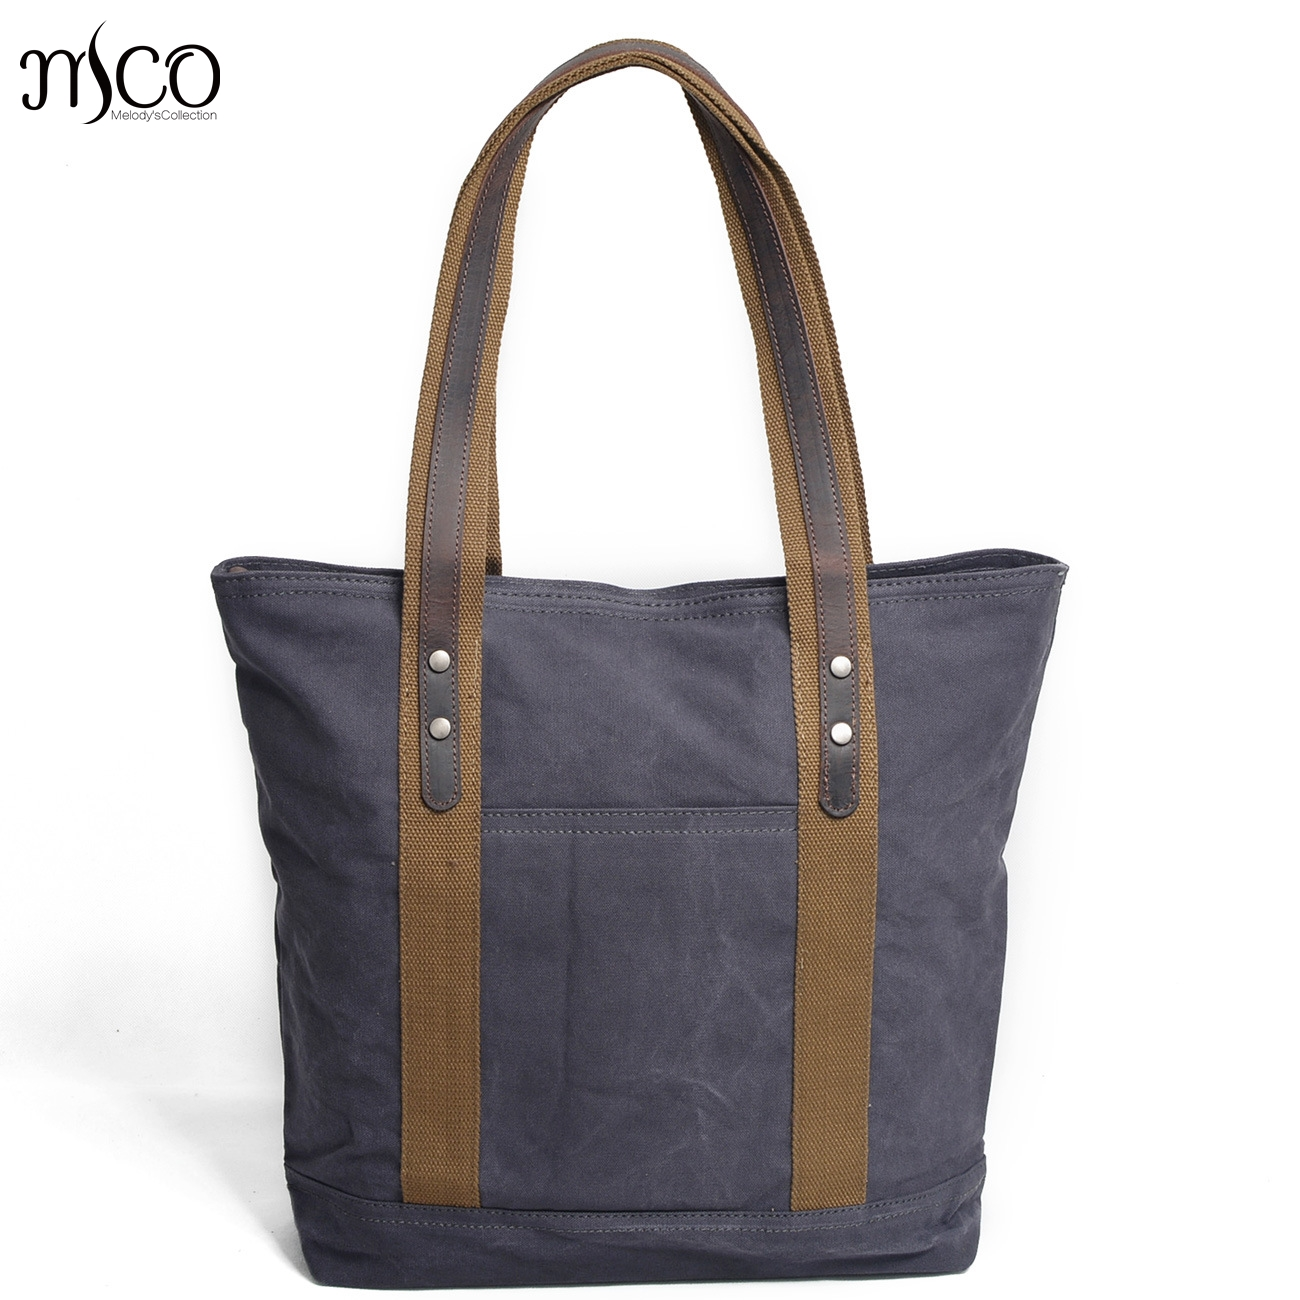 2017 New Design Brands High Quality Canvas Shopping Women Handbag Women Bag Female Tote Lady Luxury Women Shoulder Bags